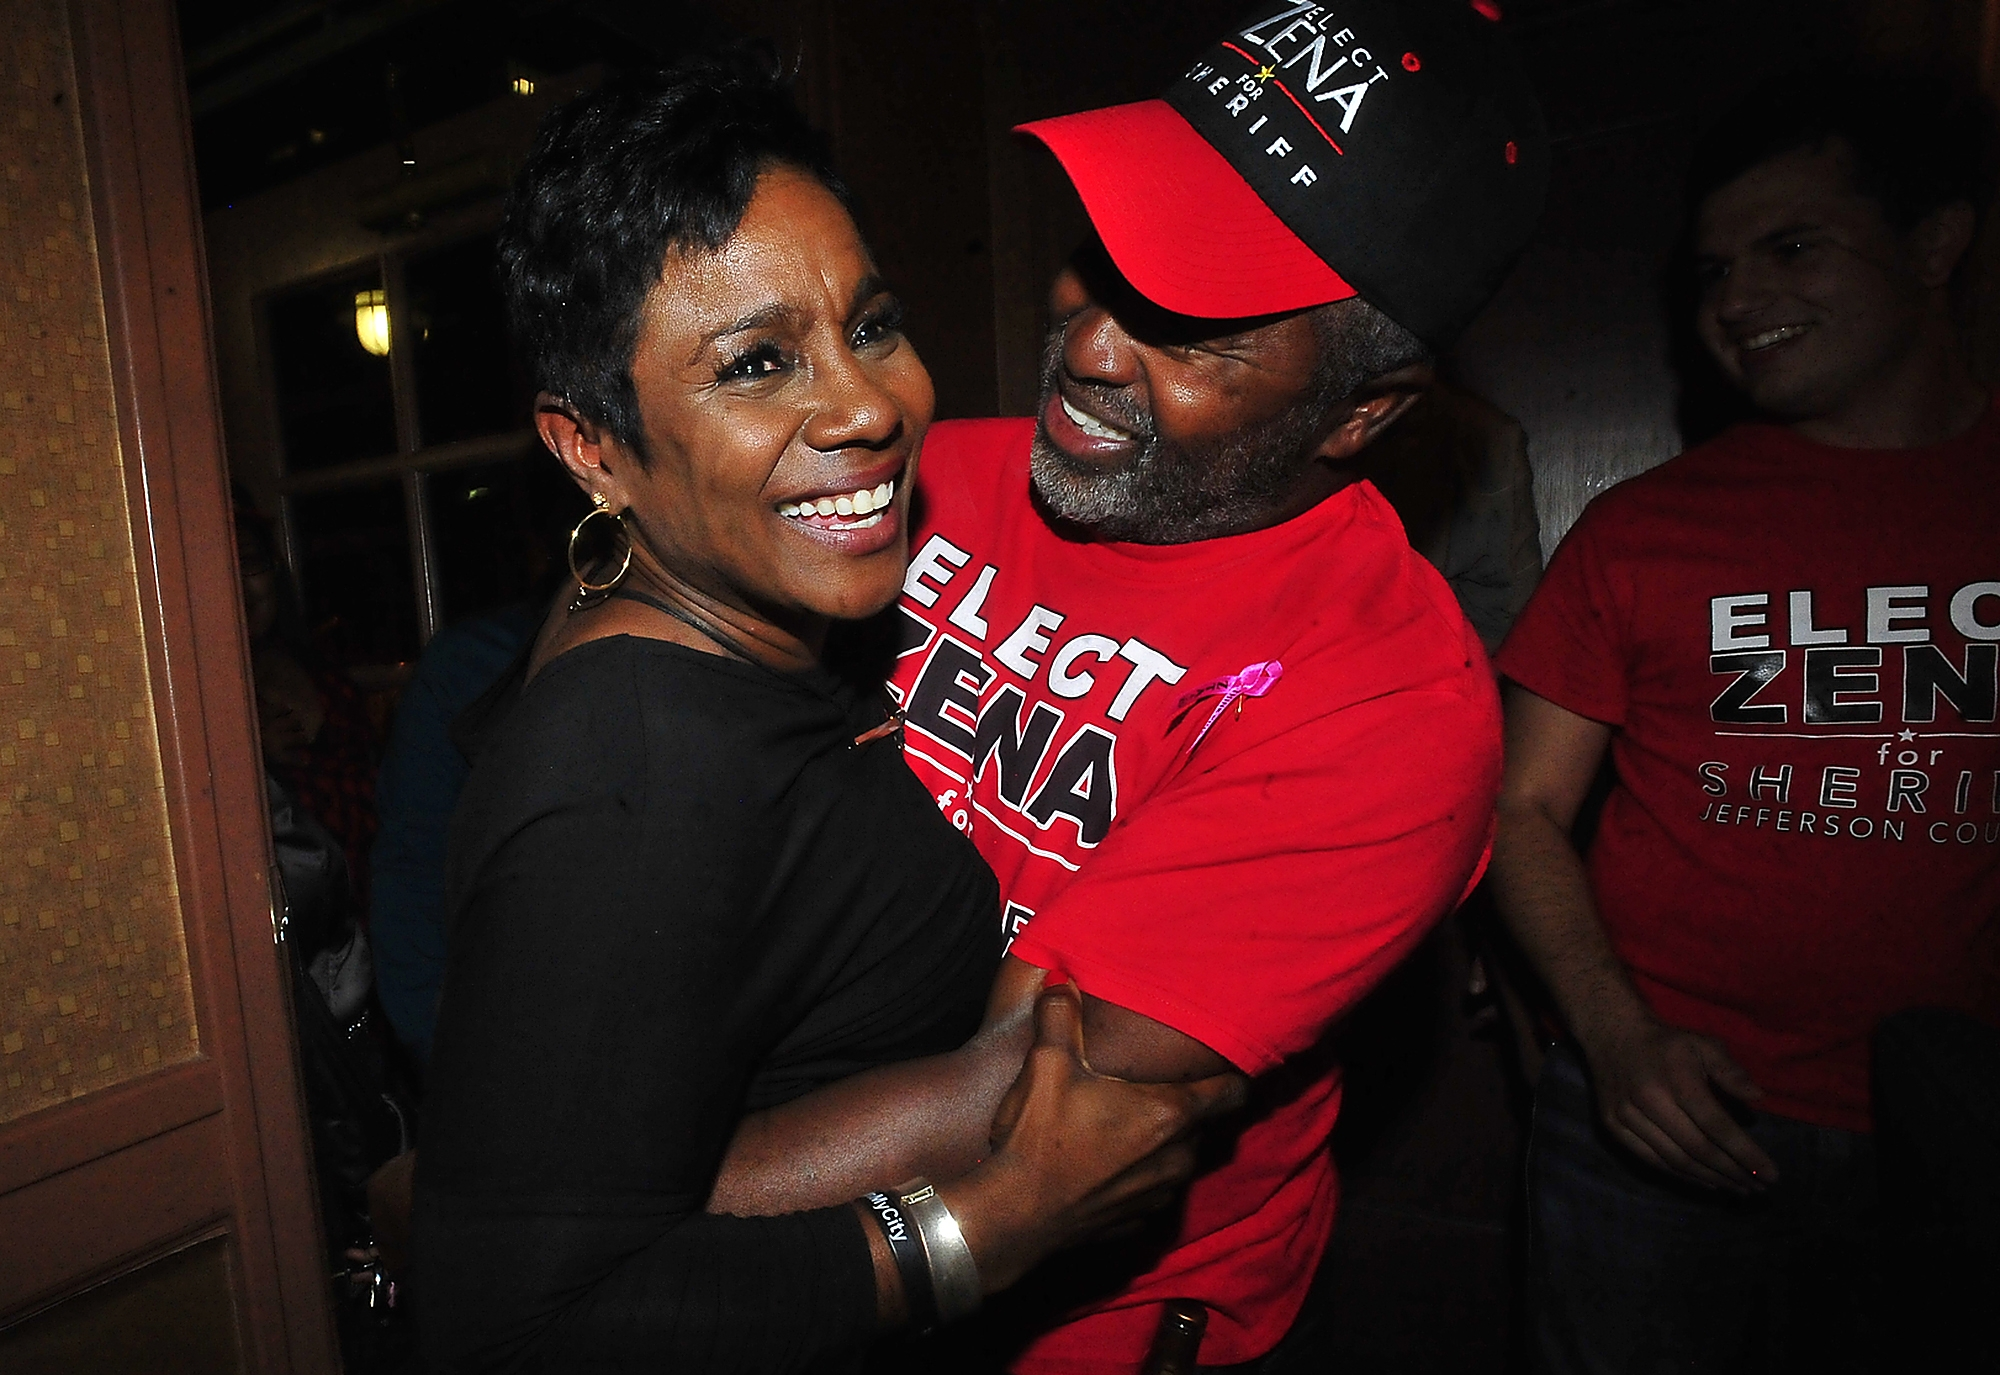 FILE - In this Nov. 8, 2016 file photo, Zena Stephens,is surrounded by supporters while celebrating her election win over Republican Ray Beck for sheriff in Beaumont, Texas on Tuesday, Nov. 8, 2016.  When Stephens takes office on Jan. 1, she will join Vanessa Crawford in Petersburg, Va., as the only black female sheriffs in the U.S., according to the National Sheriff's Association.  (Kim Brent/The Enterprise via AP)